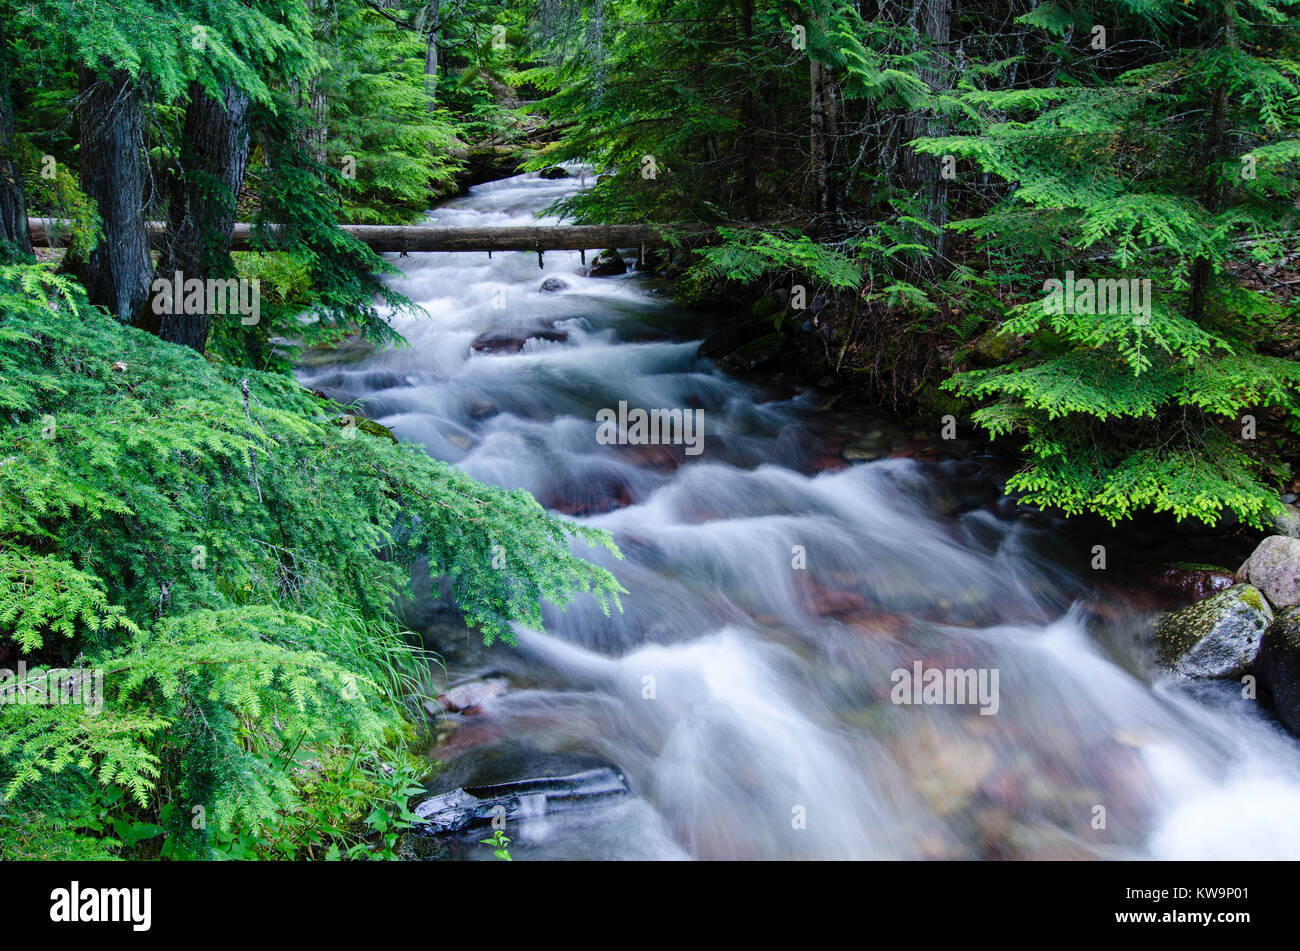 The swift waters of Jackson Creek flow thru the forest of Glacier National Park before it empties into Lake McDonald. - Stock Image